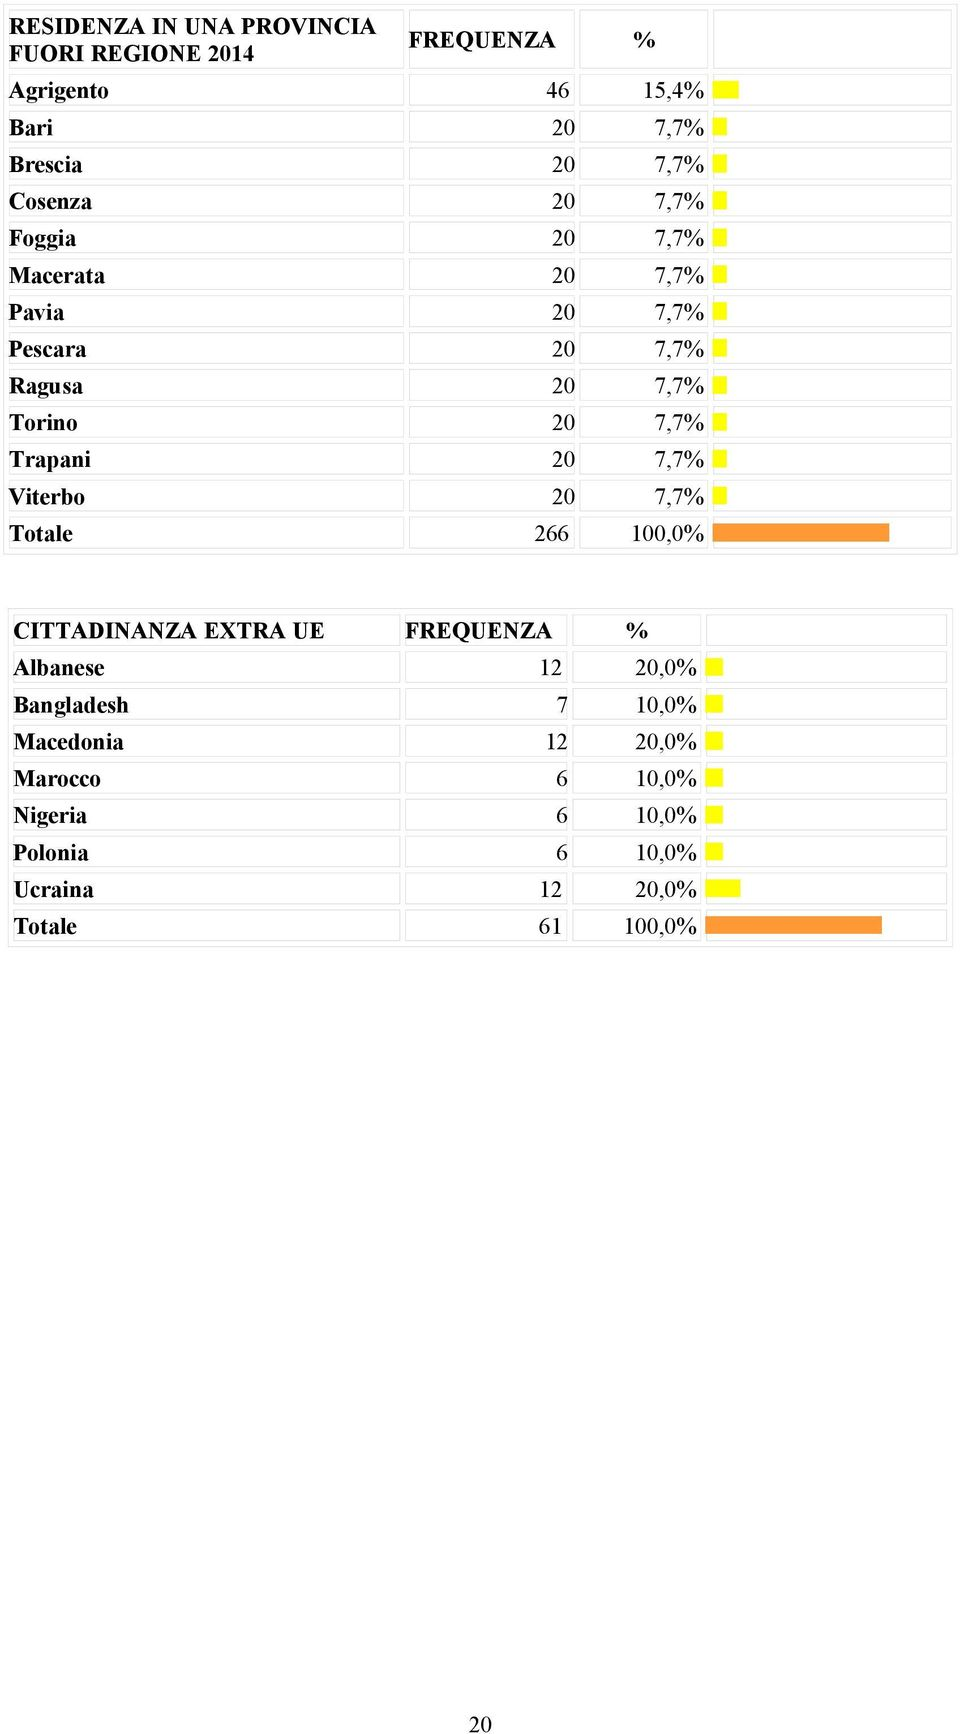 Trapani 20 7,7% Viterbo 20 7,7% Totale 266 100,0% CITTADINANZA EXTRA UE FREQUENZA % Albanese 12 20,0%